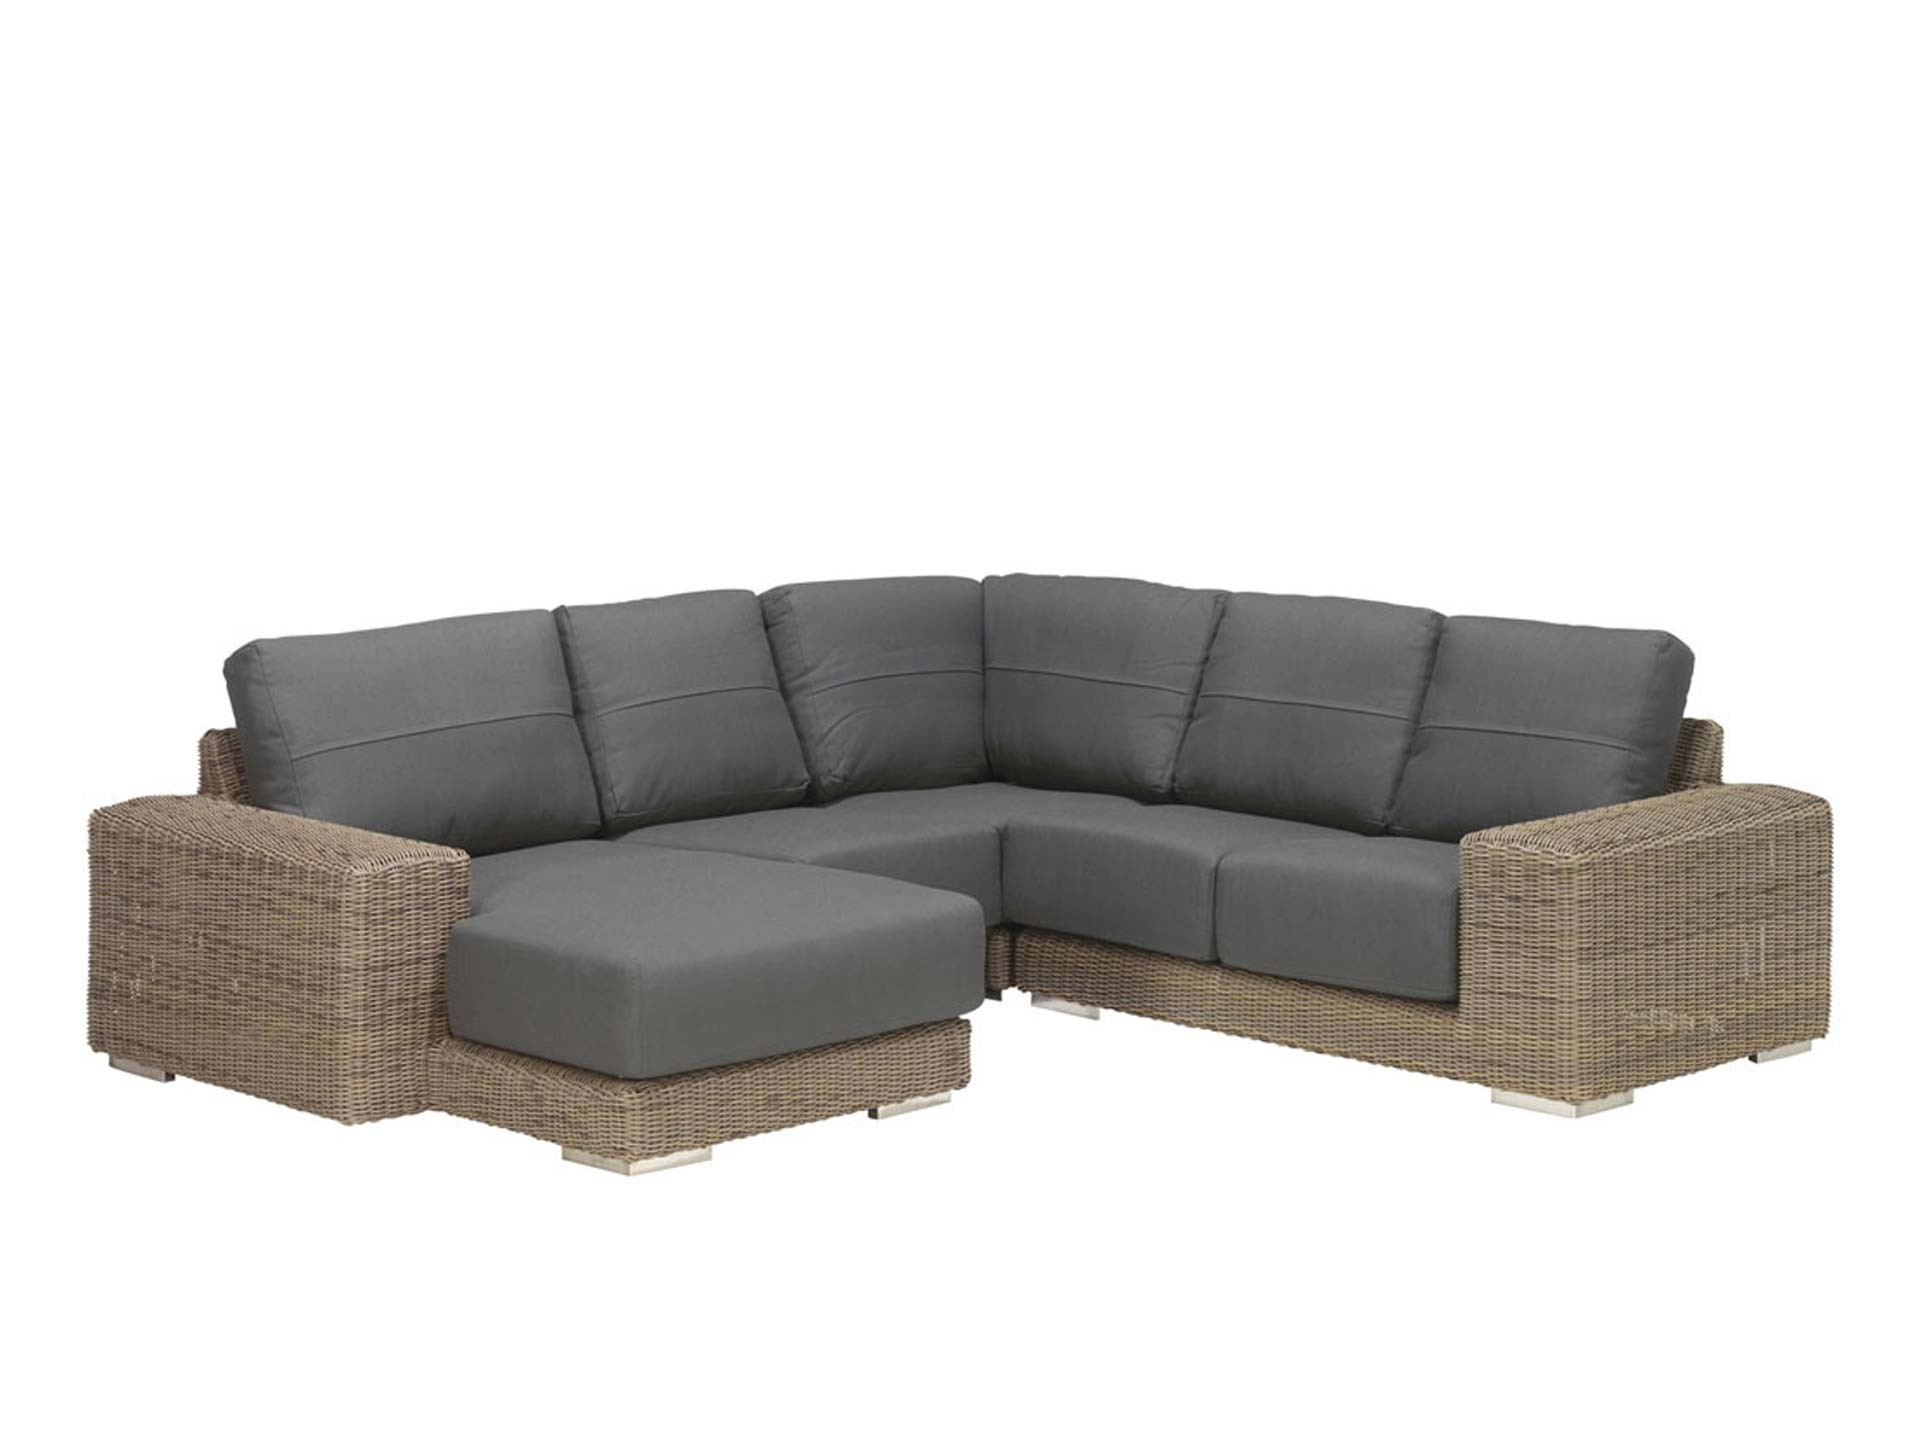 Kingston loungeset 4-delig met chaise lounge